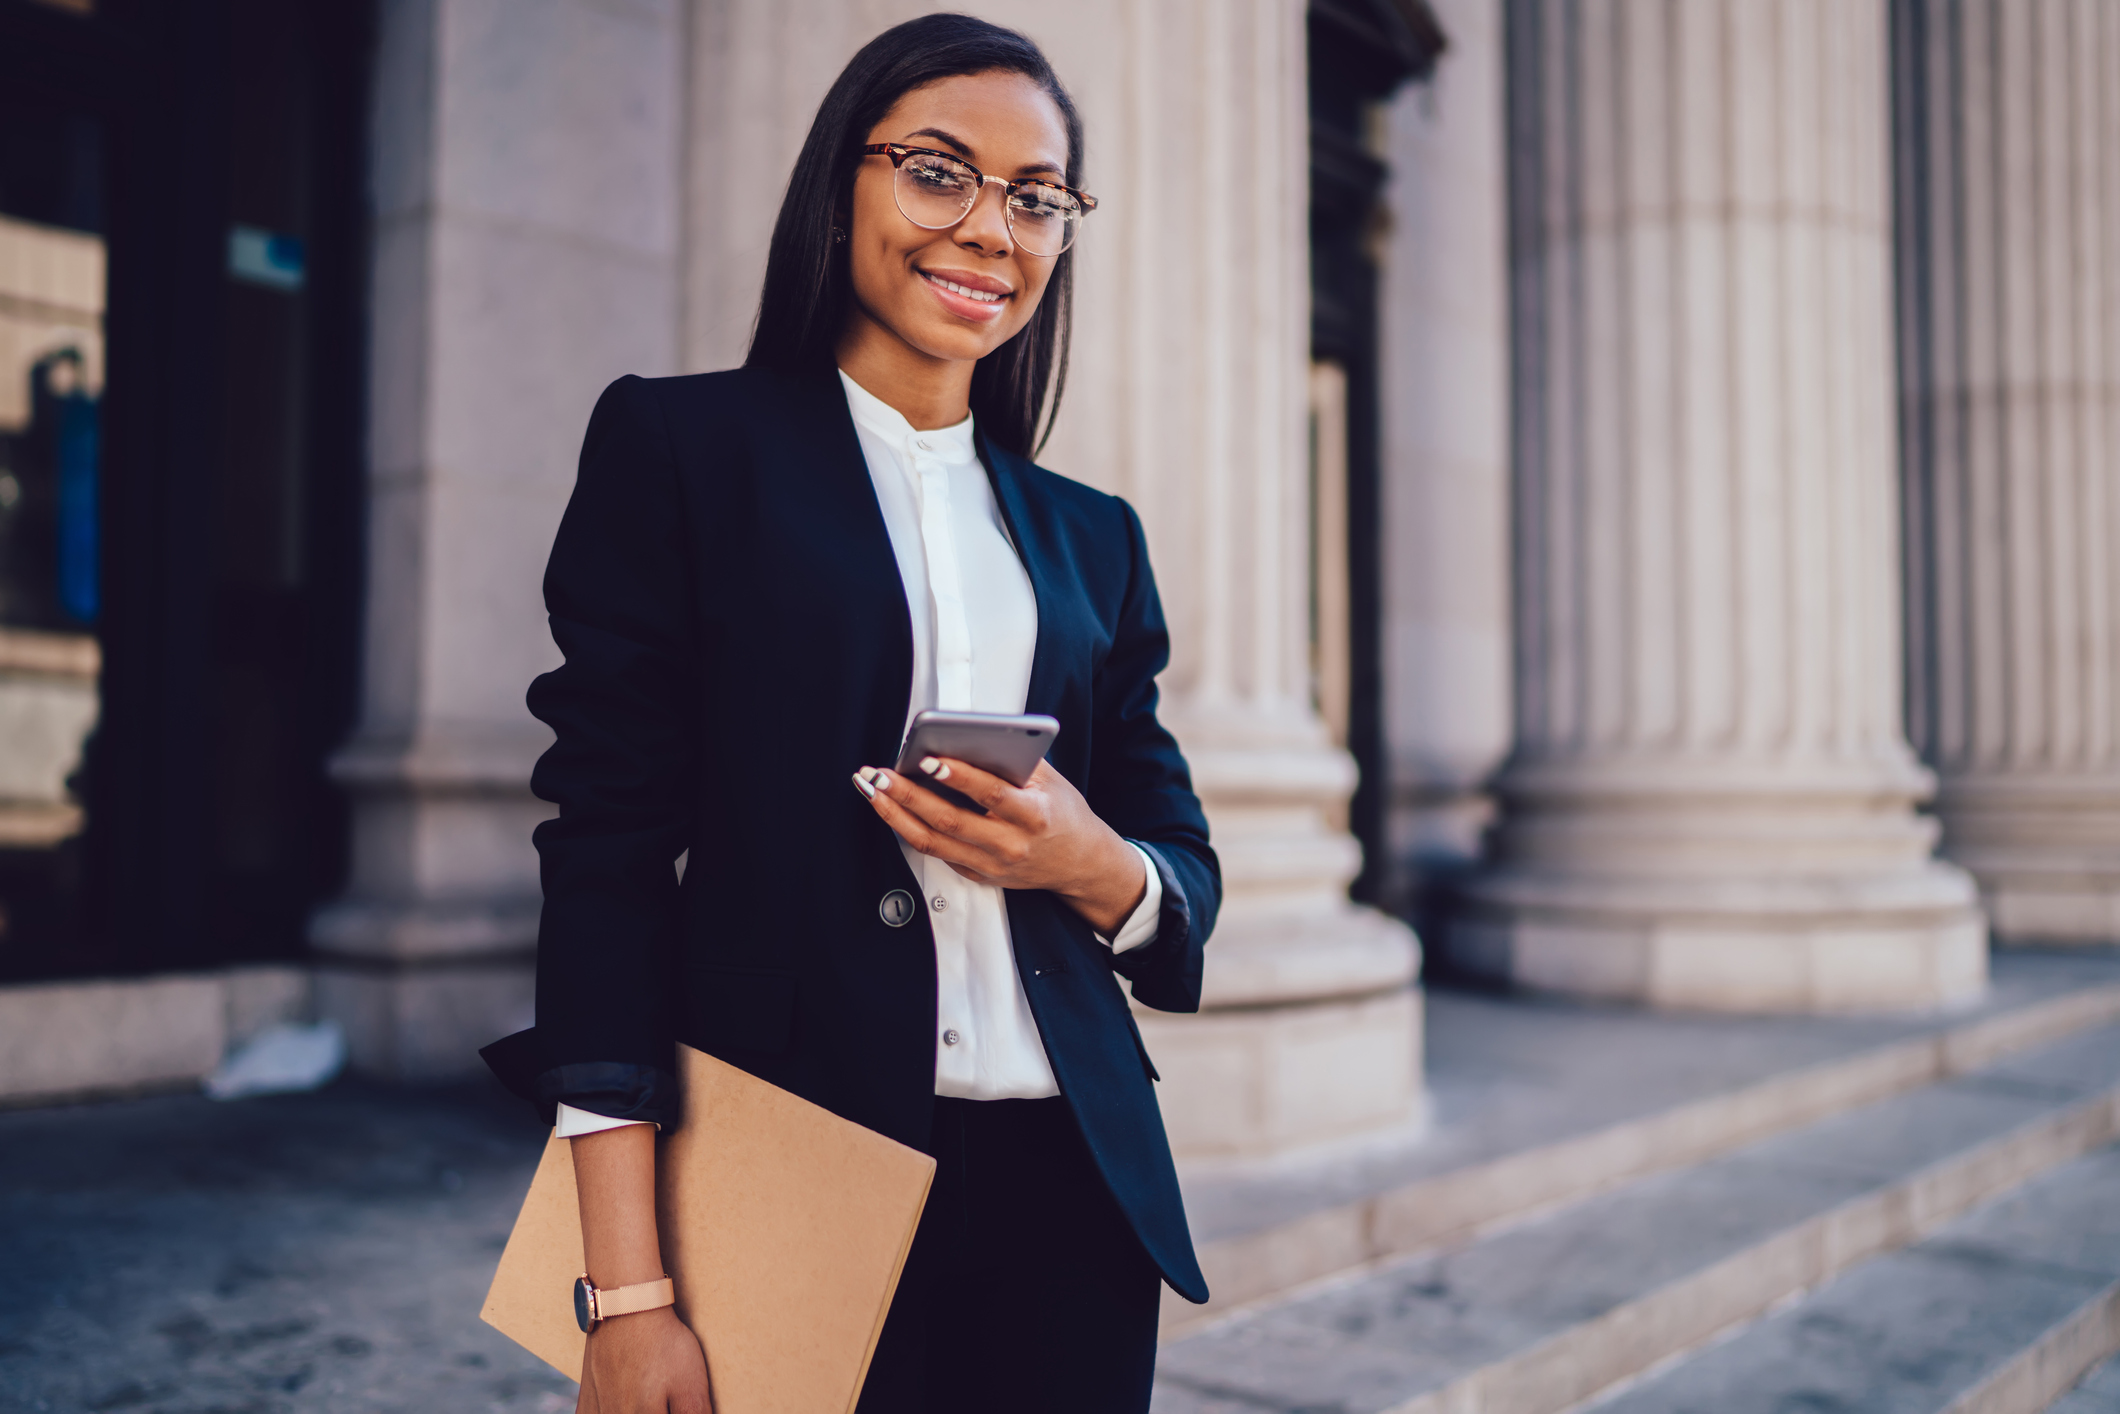 Young professional woman holding a folder and using a smartphone